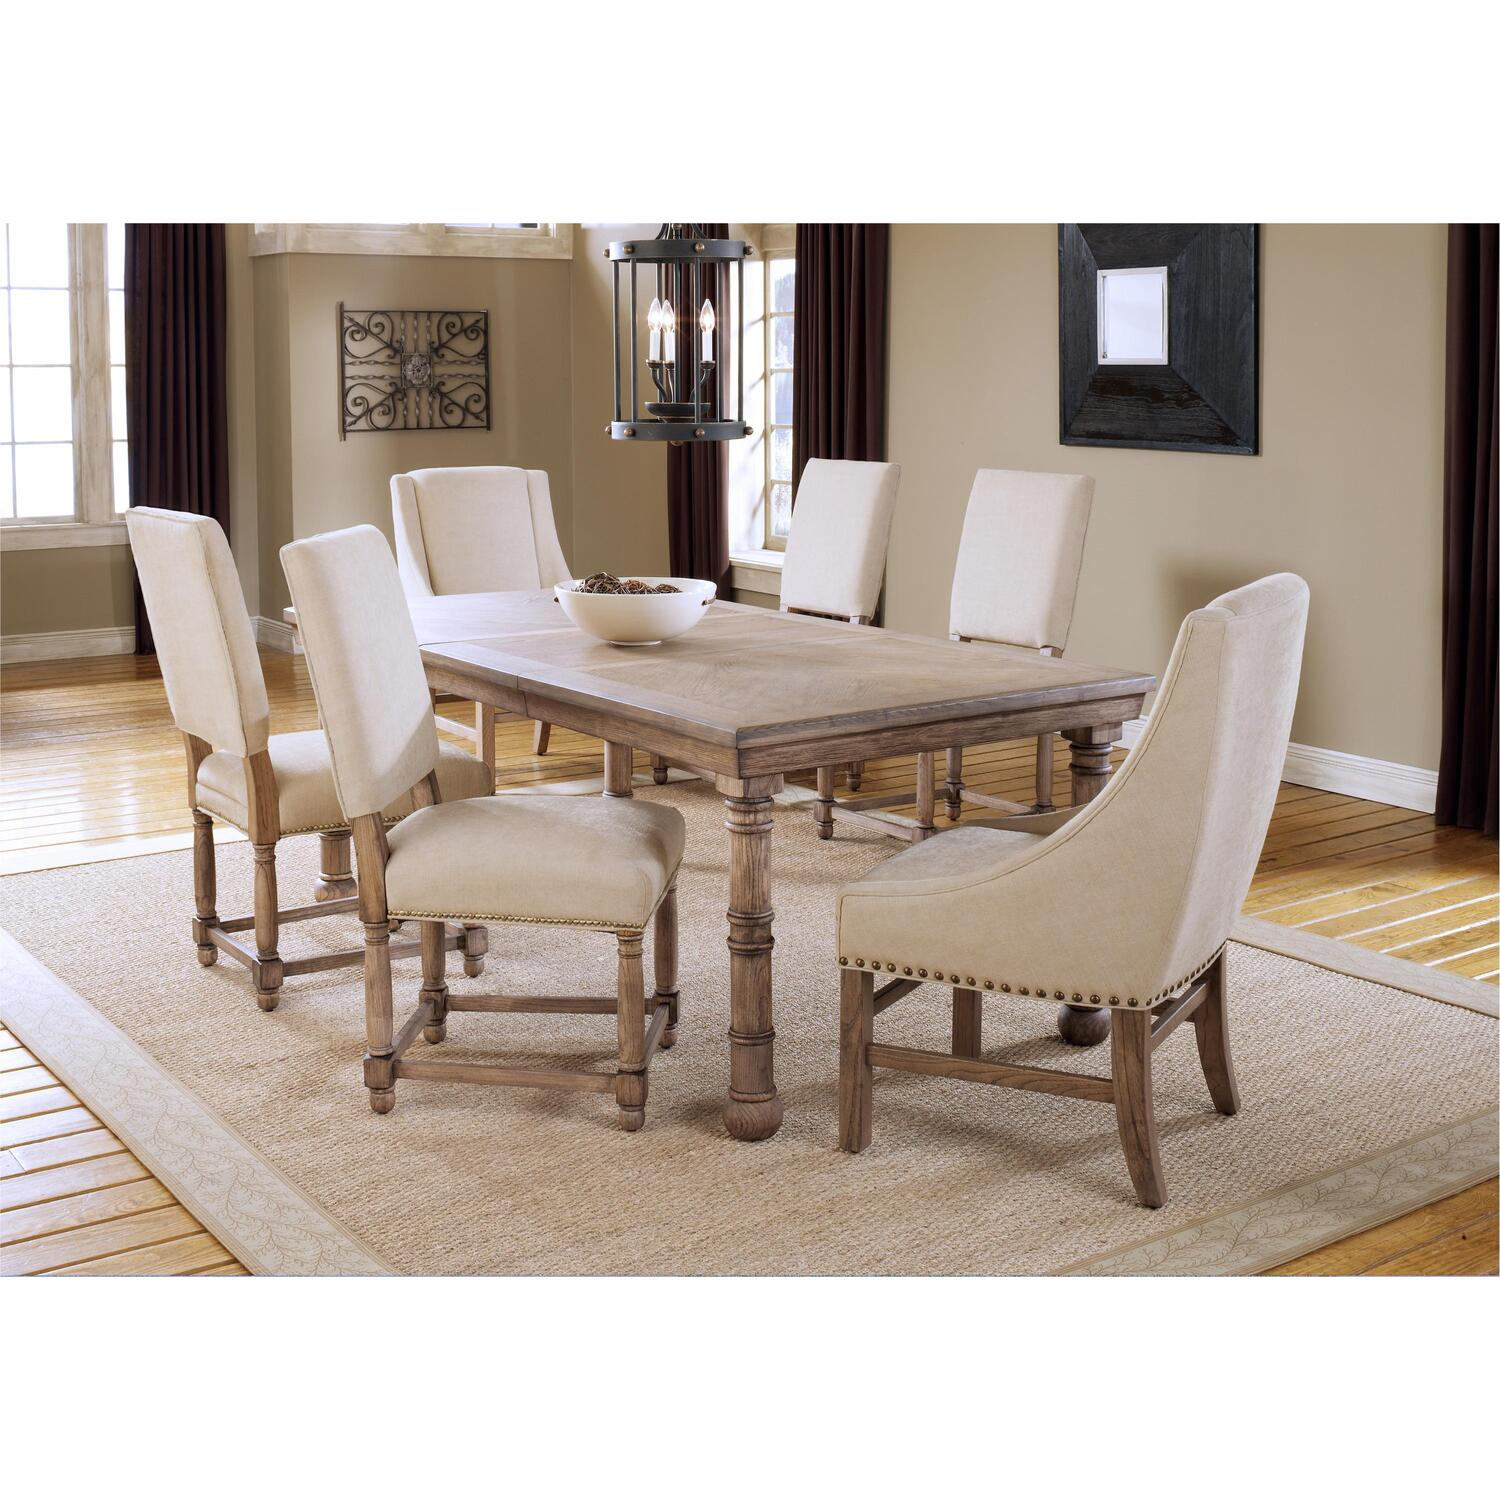 Hillsdale Furniture Hartland 7 Piece Dining Set Table 4